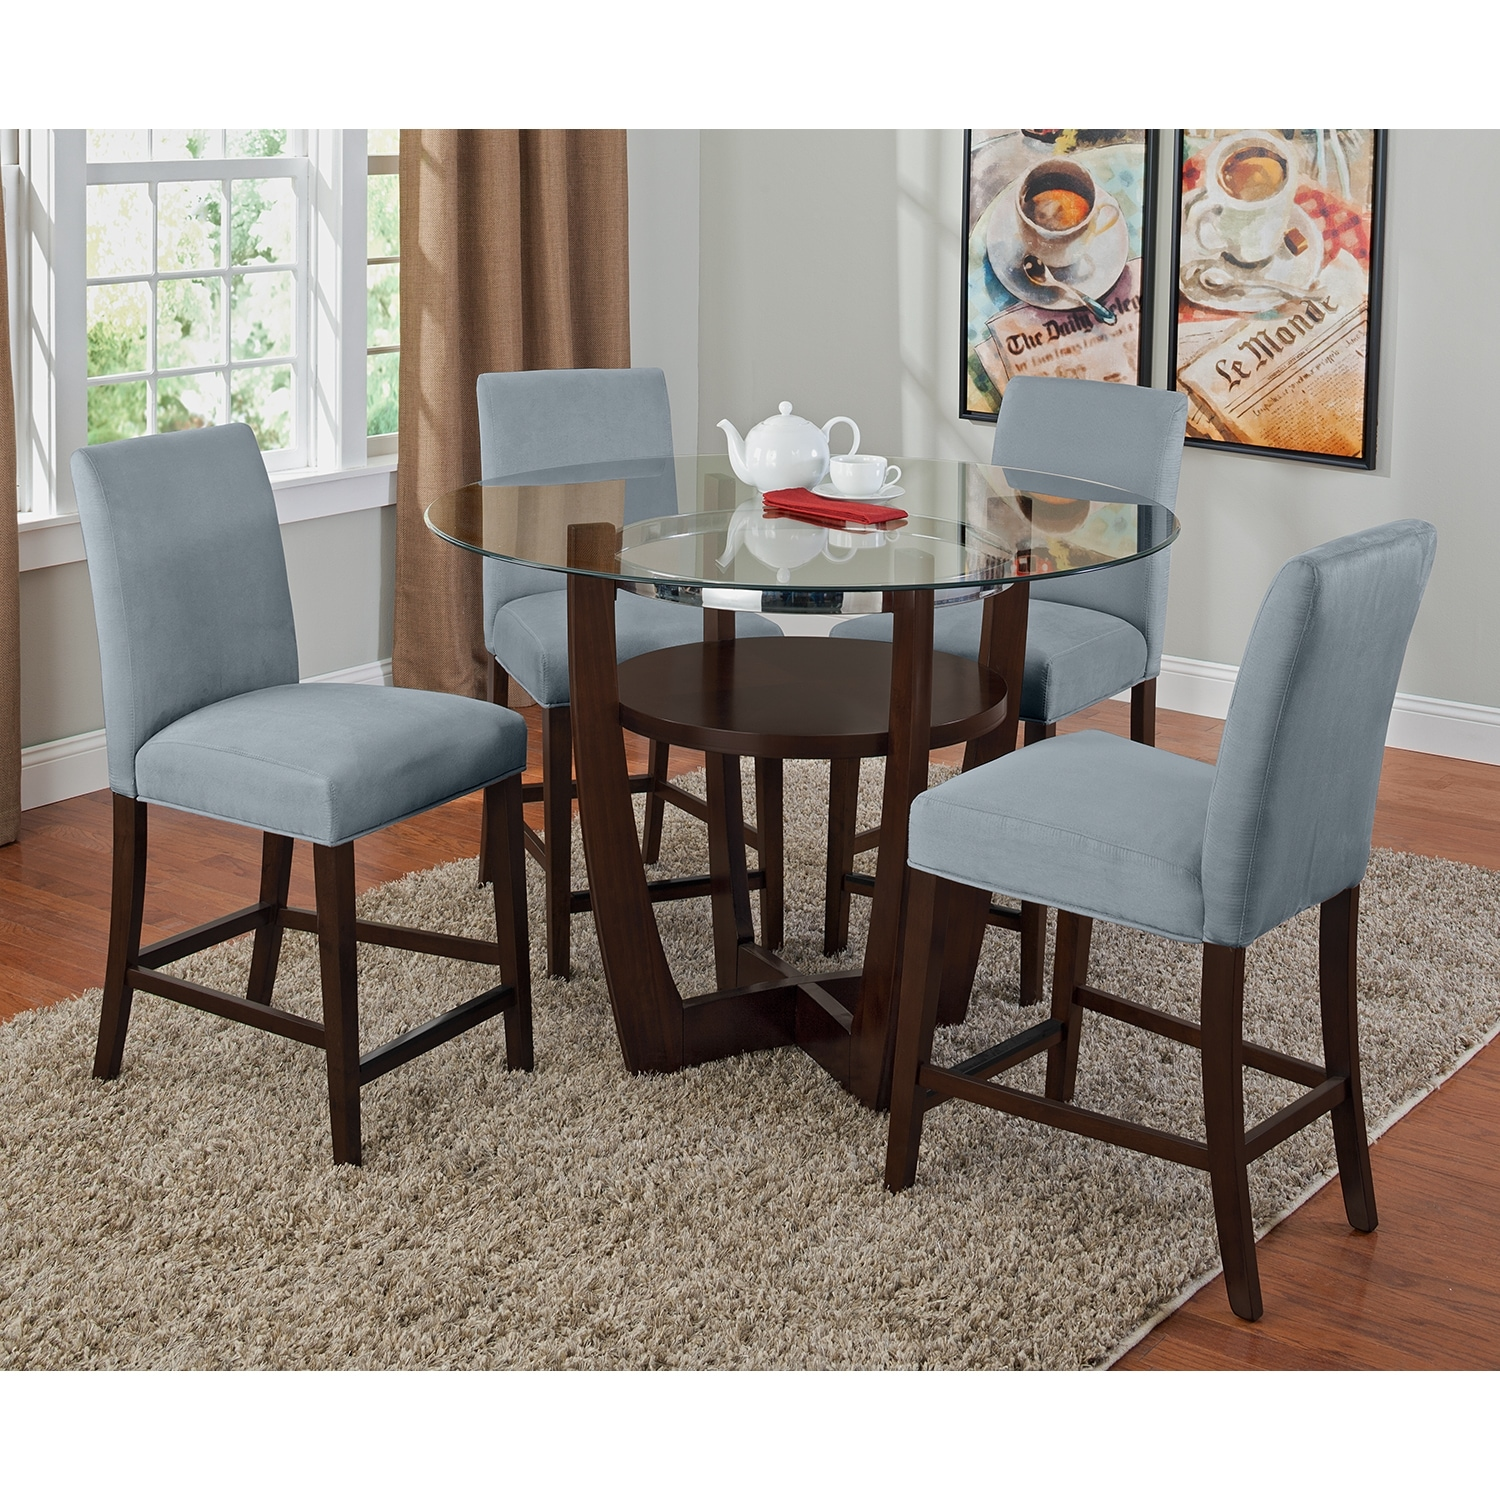 Dining Room Bar Kitchen Furniture: Alcove Counter-Height Stool - Aqua